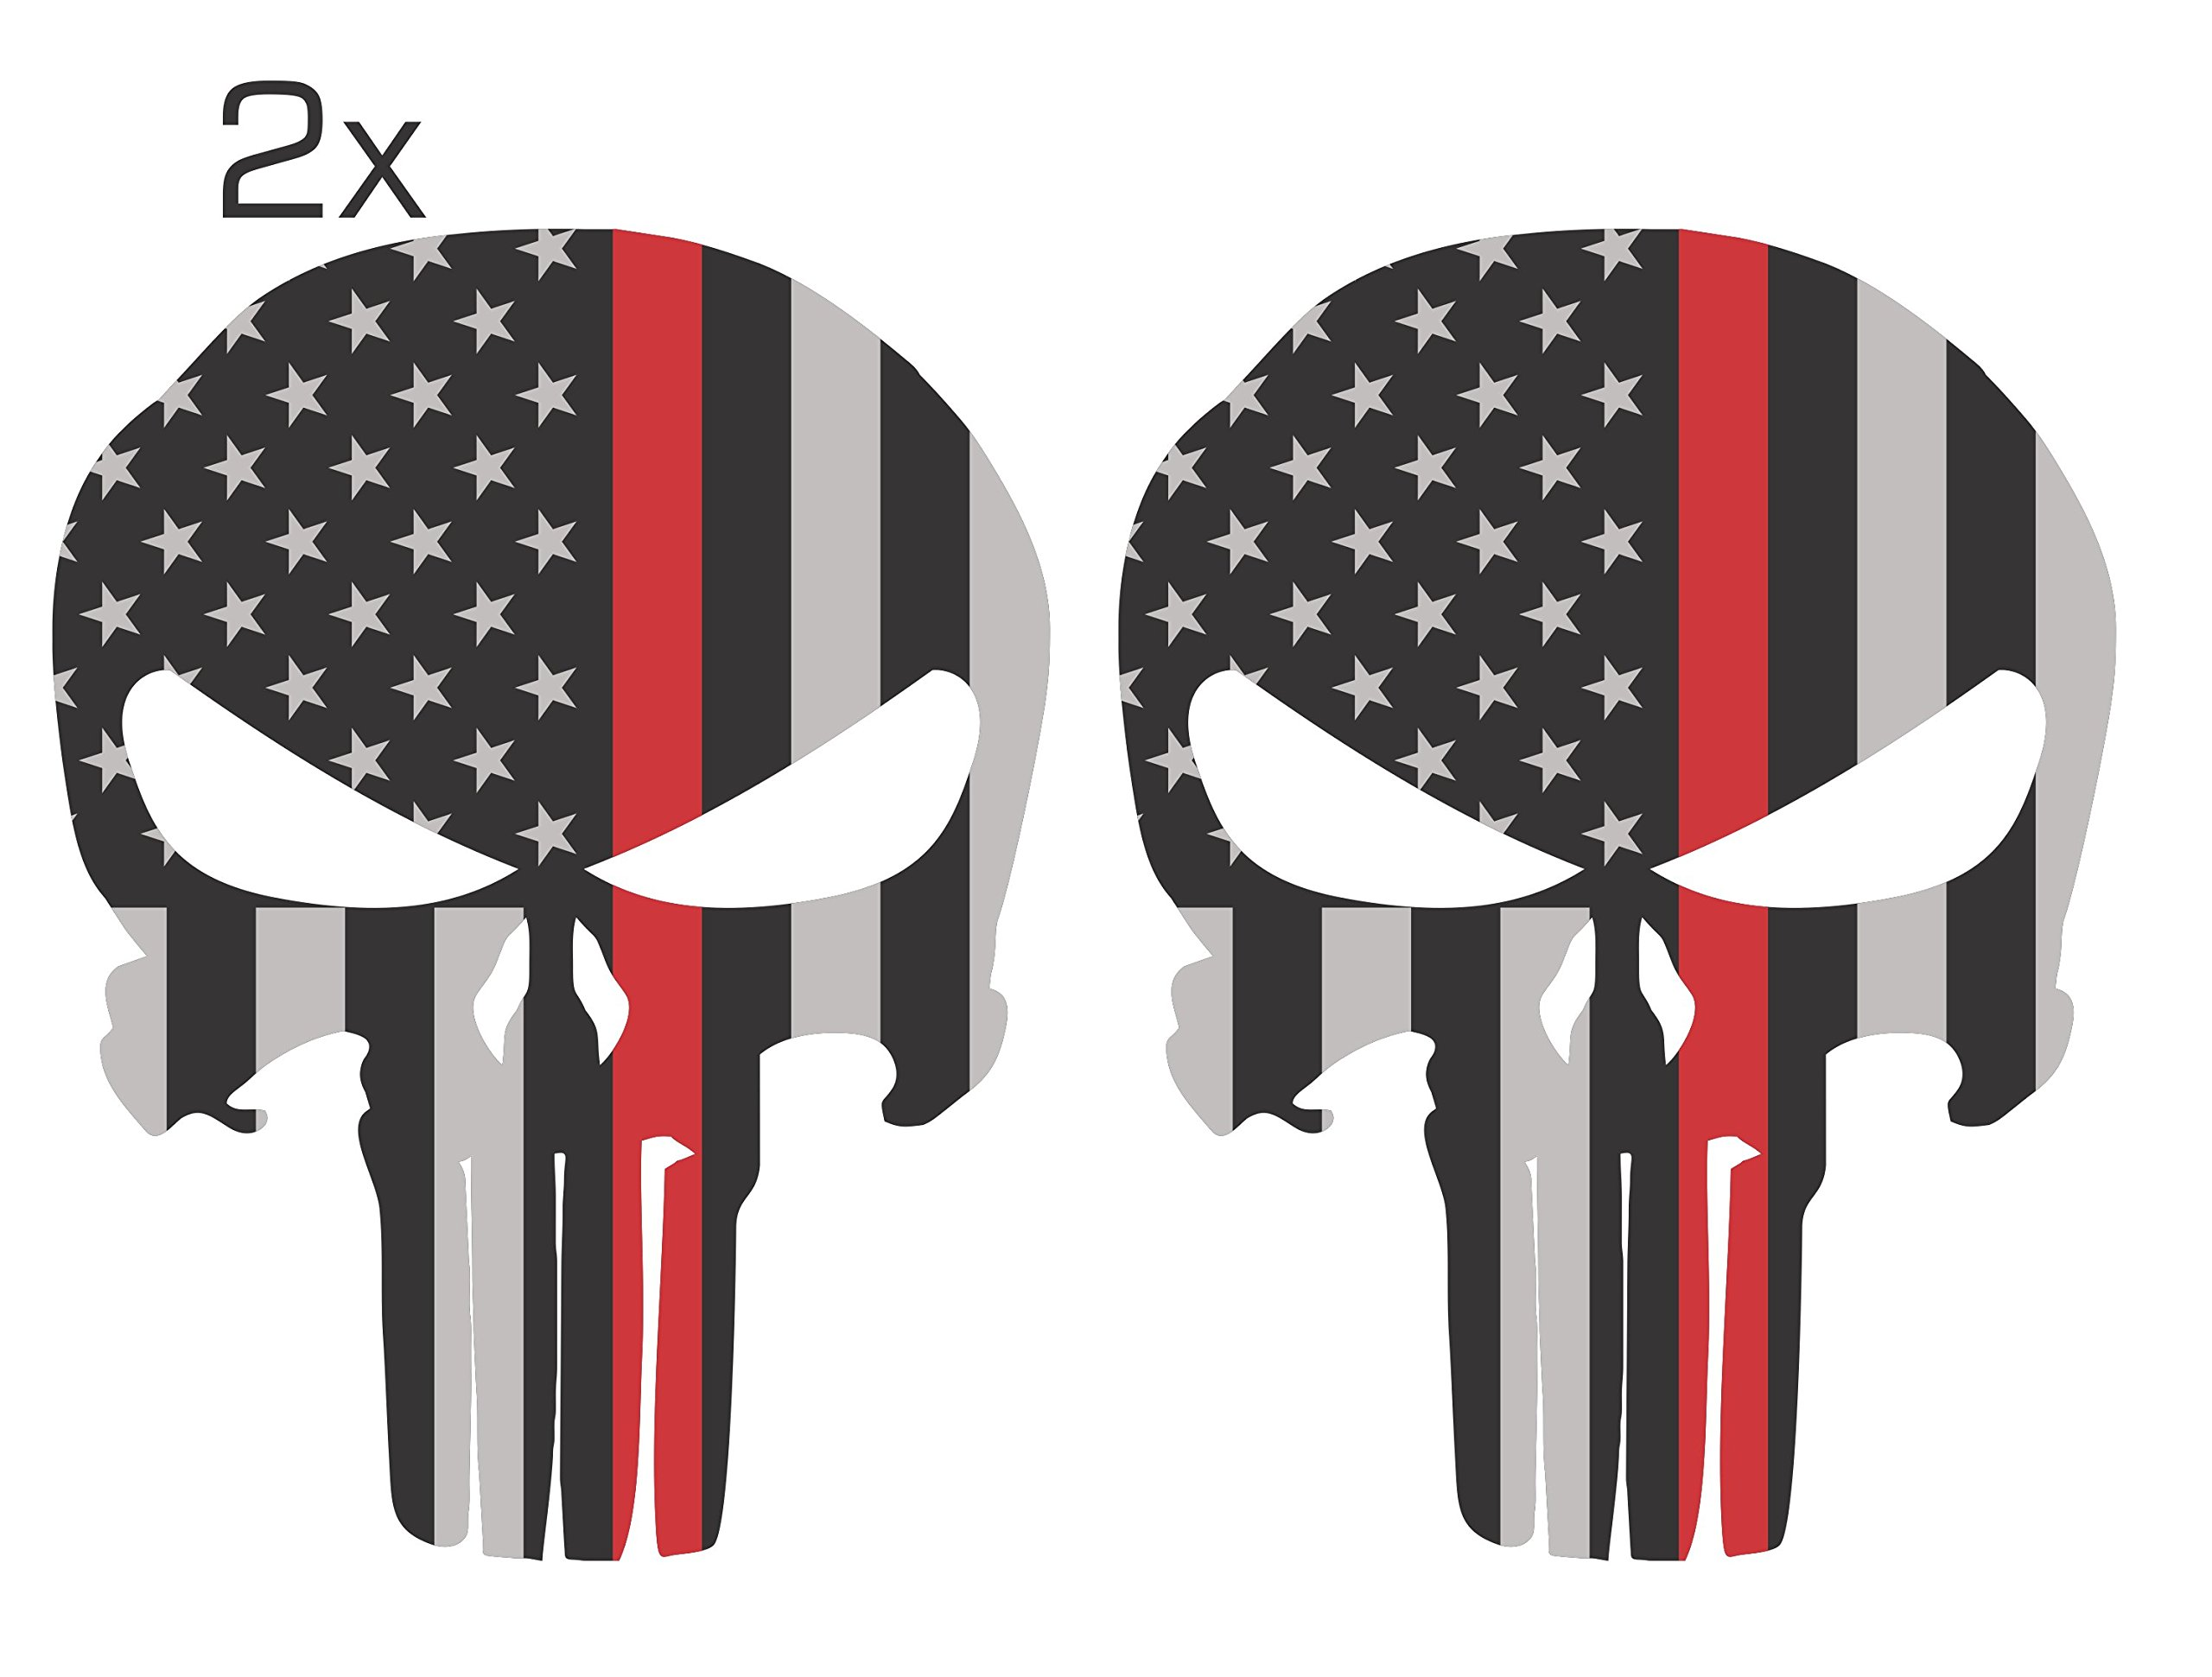 Official Red Line Punisher Skull 3M/Orafol Decal Supporting Our Firefighter Heroes Various Sizes Pack of 2 (4.5'' x 6'', Grey Solid Punisher Skull) by Ohana Graphix